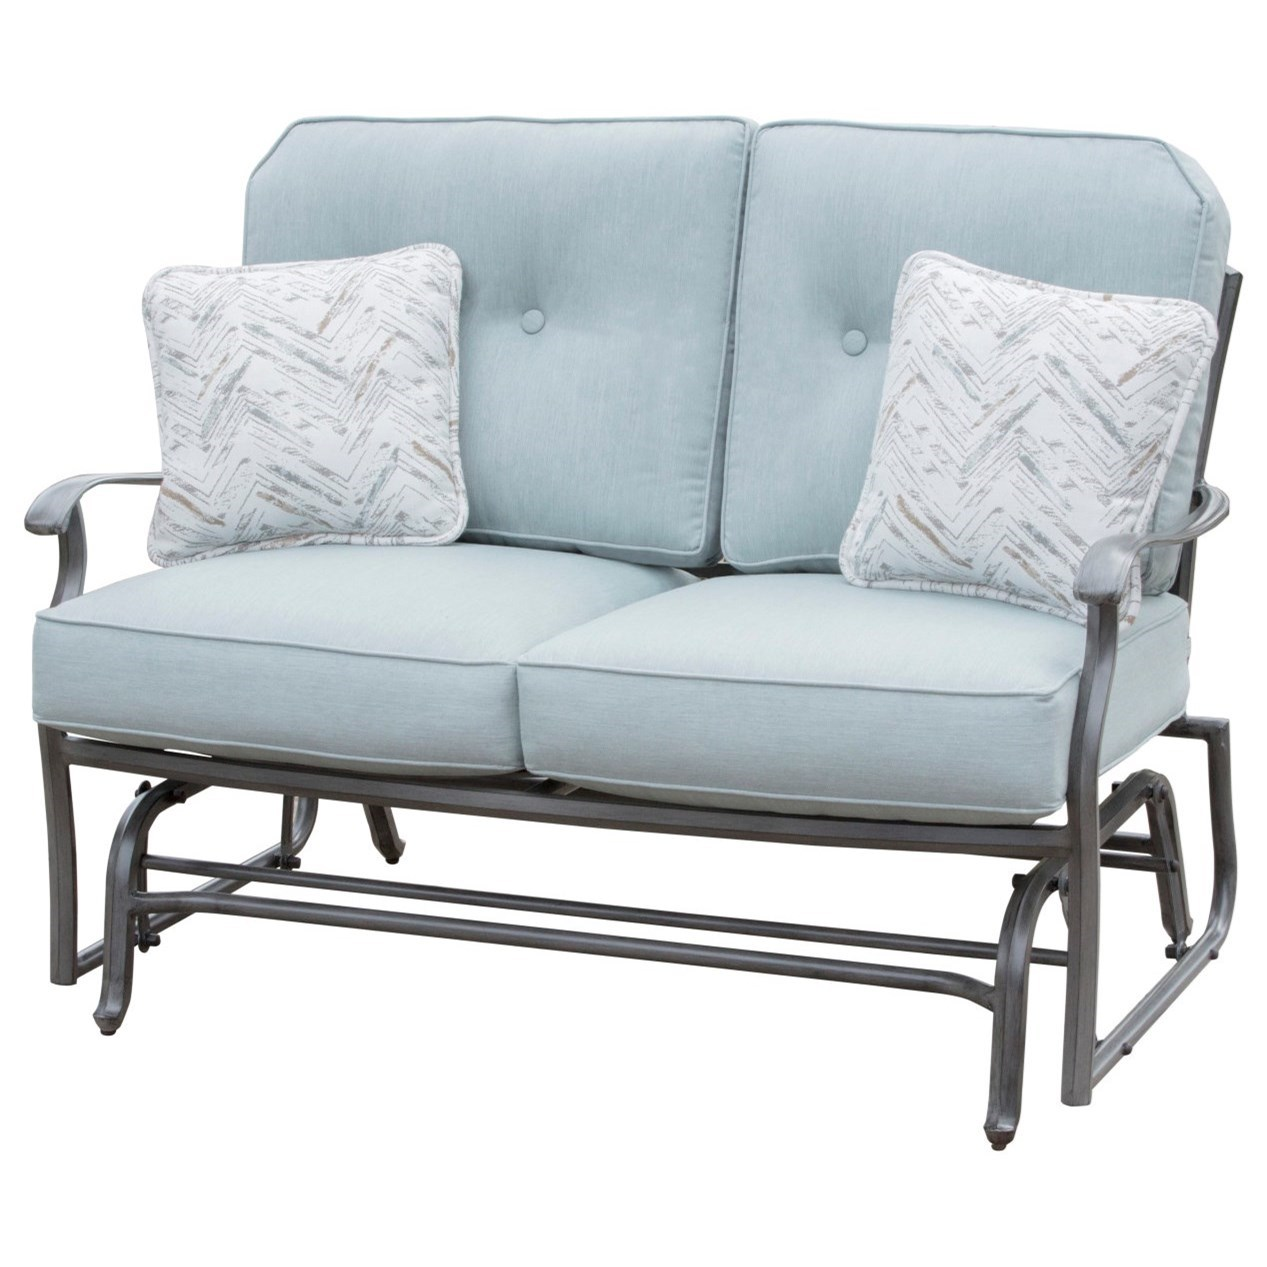 Melbourne by Agio Outdoor Gliding Love Seat by Apricity Outdoor at Westrich Furniture & Appliances